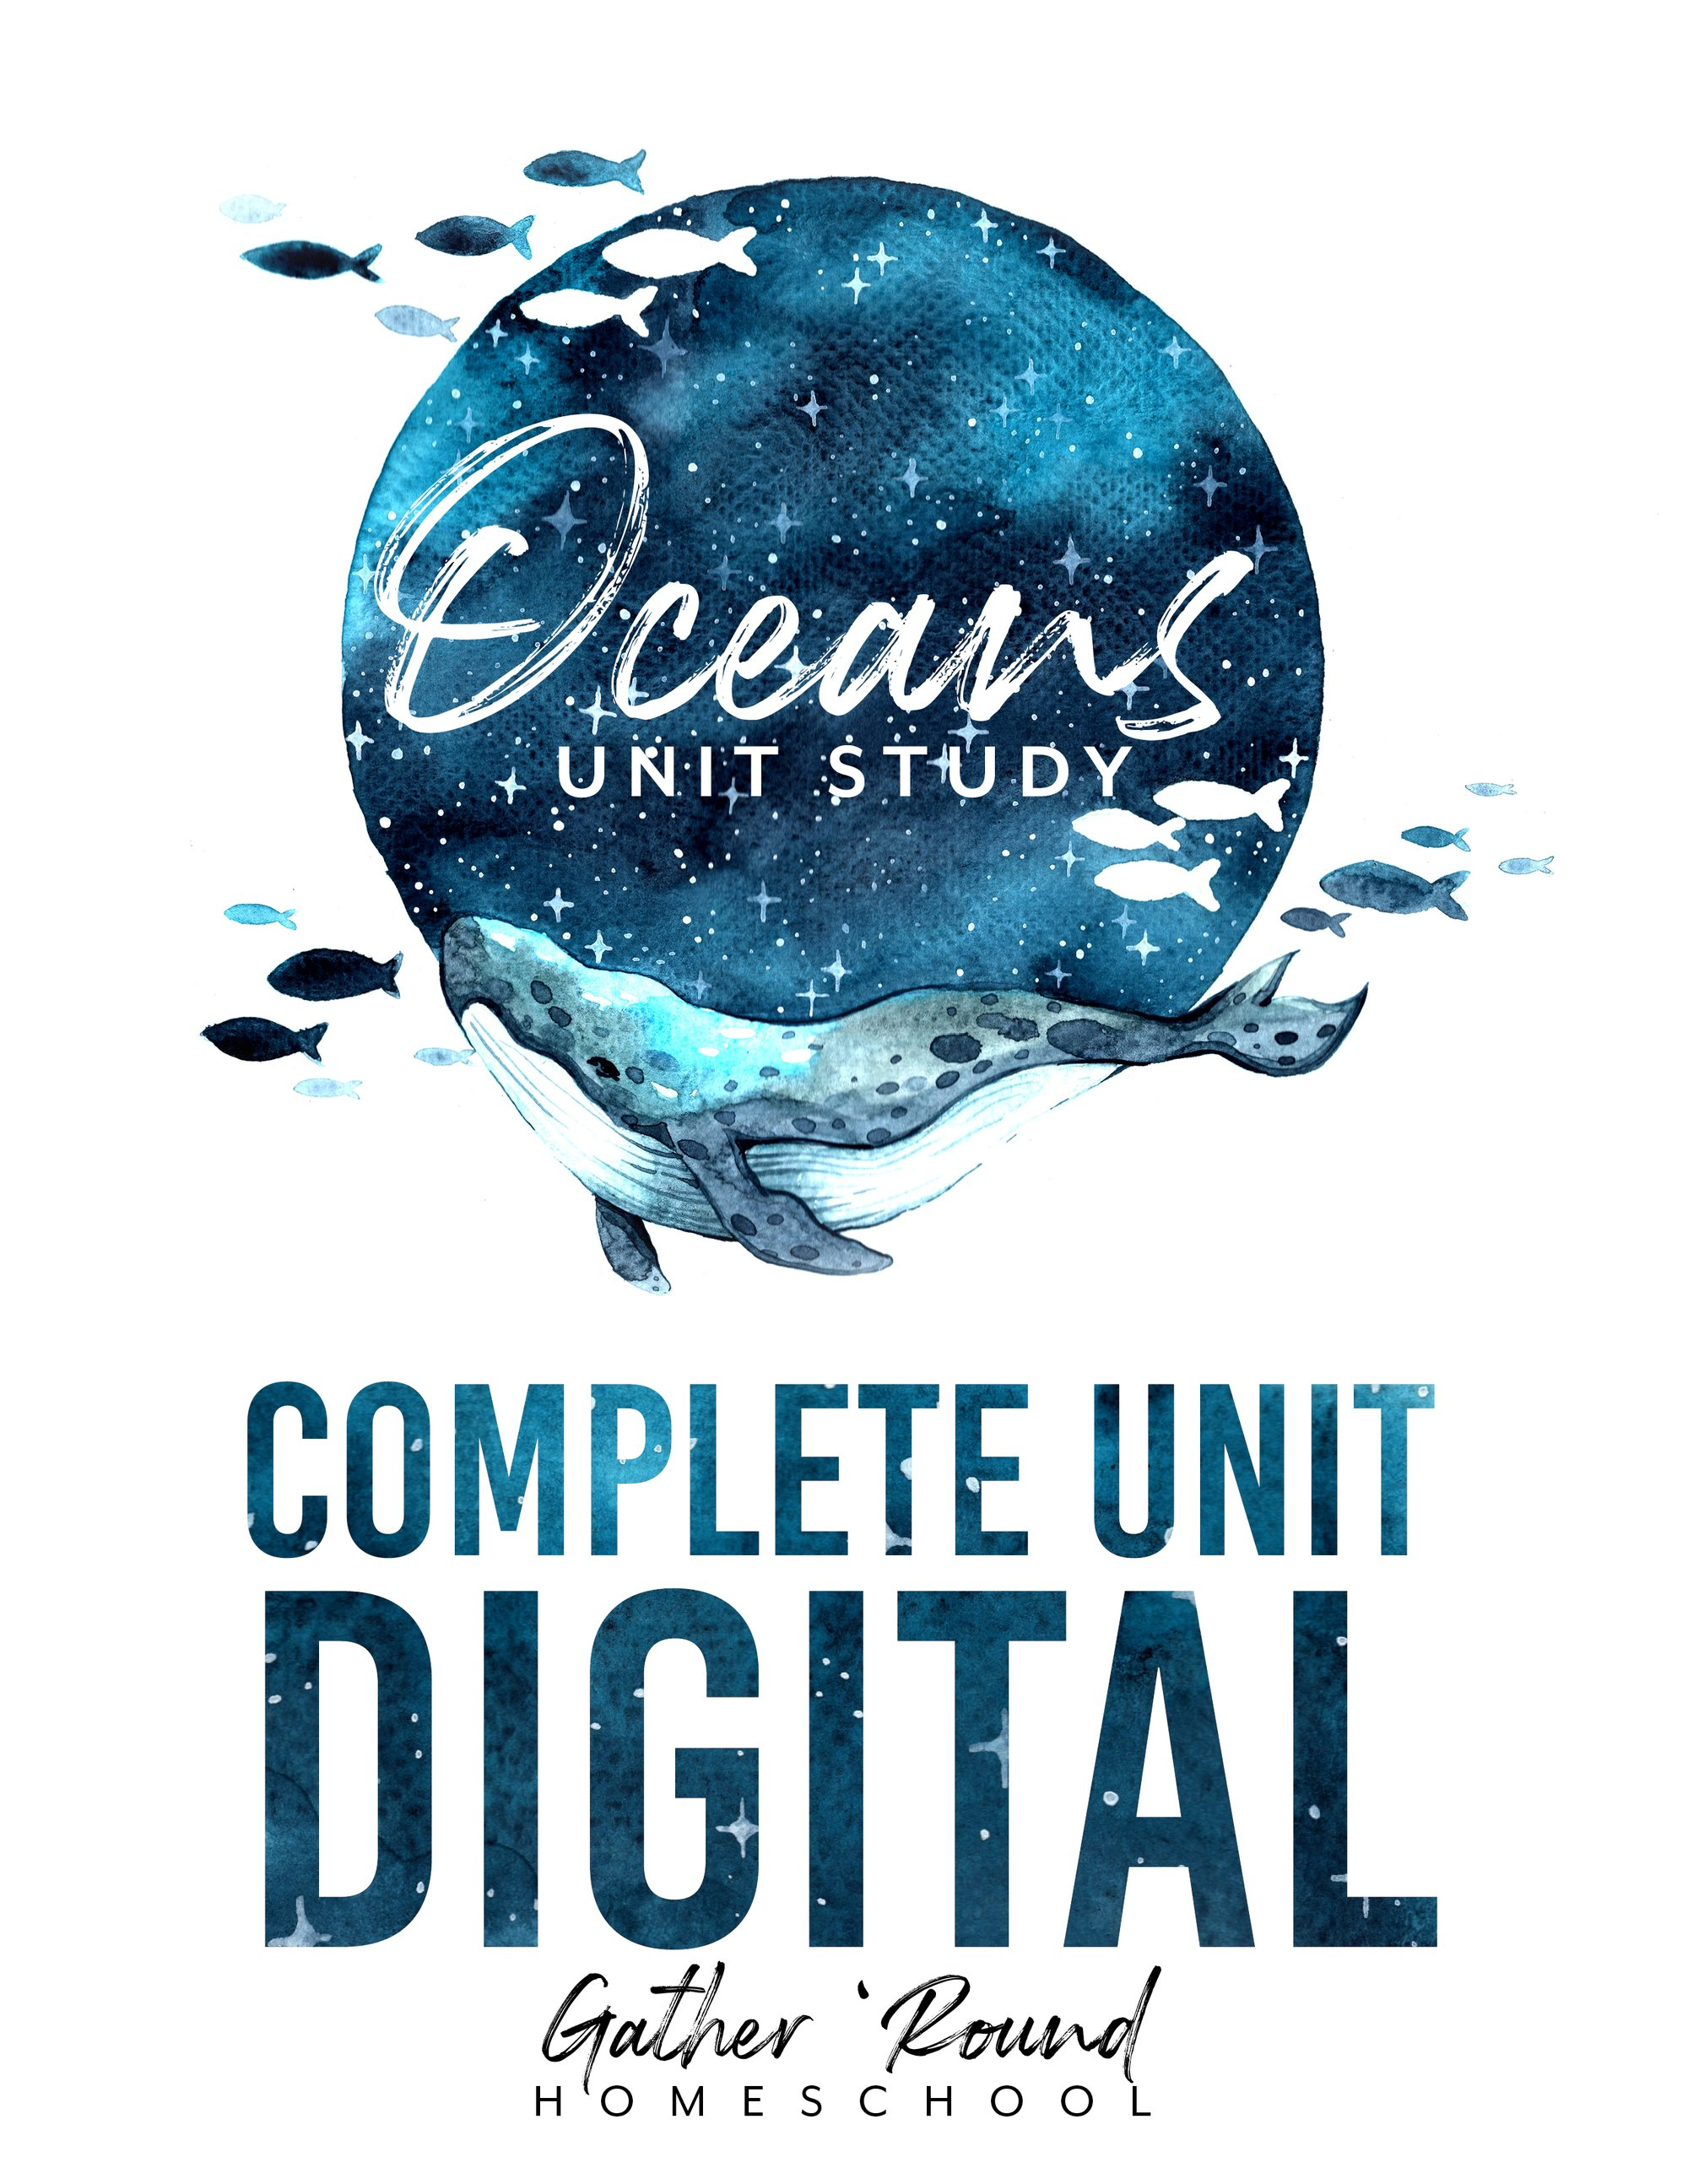 Oceans Unit Study from Gather 'Round Homeschool